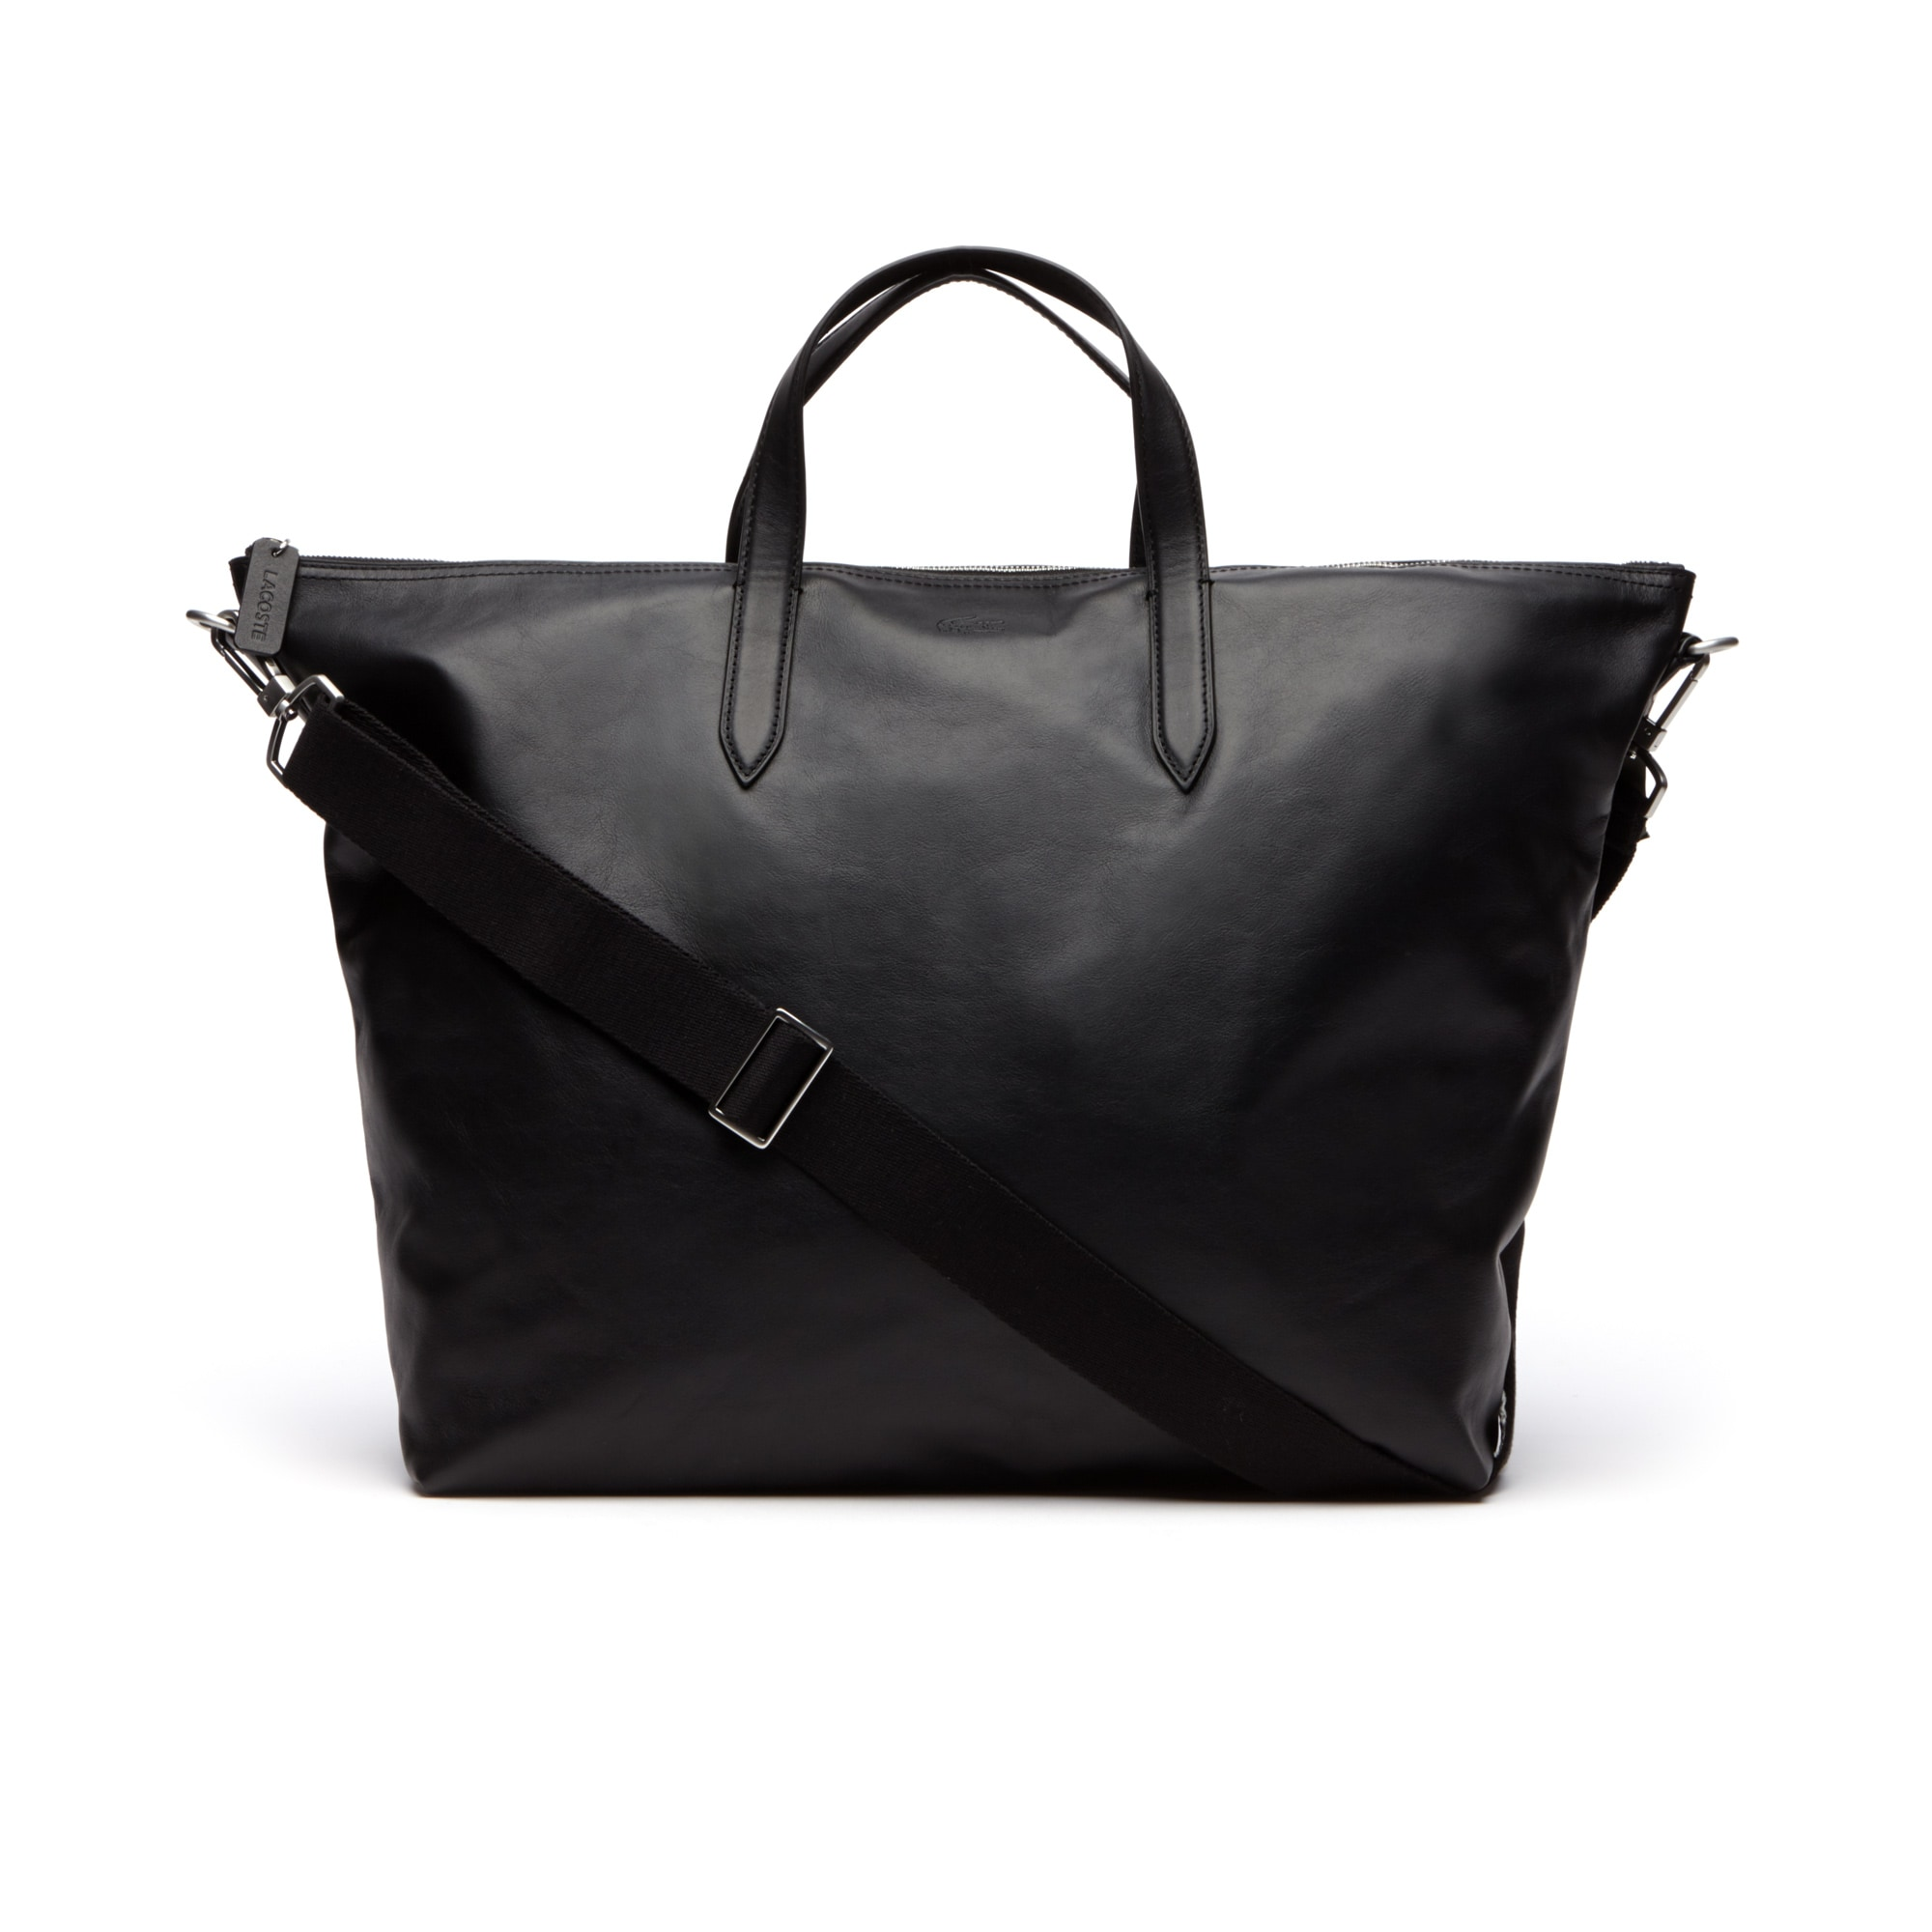 라코스테 토트백, 블랙 Lacoste Mens L.12.12 Limited Edition 85th Anniversary Leather Weekend Bag,blac